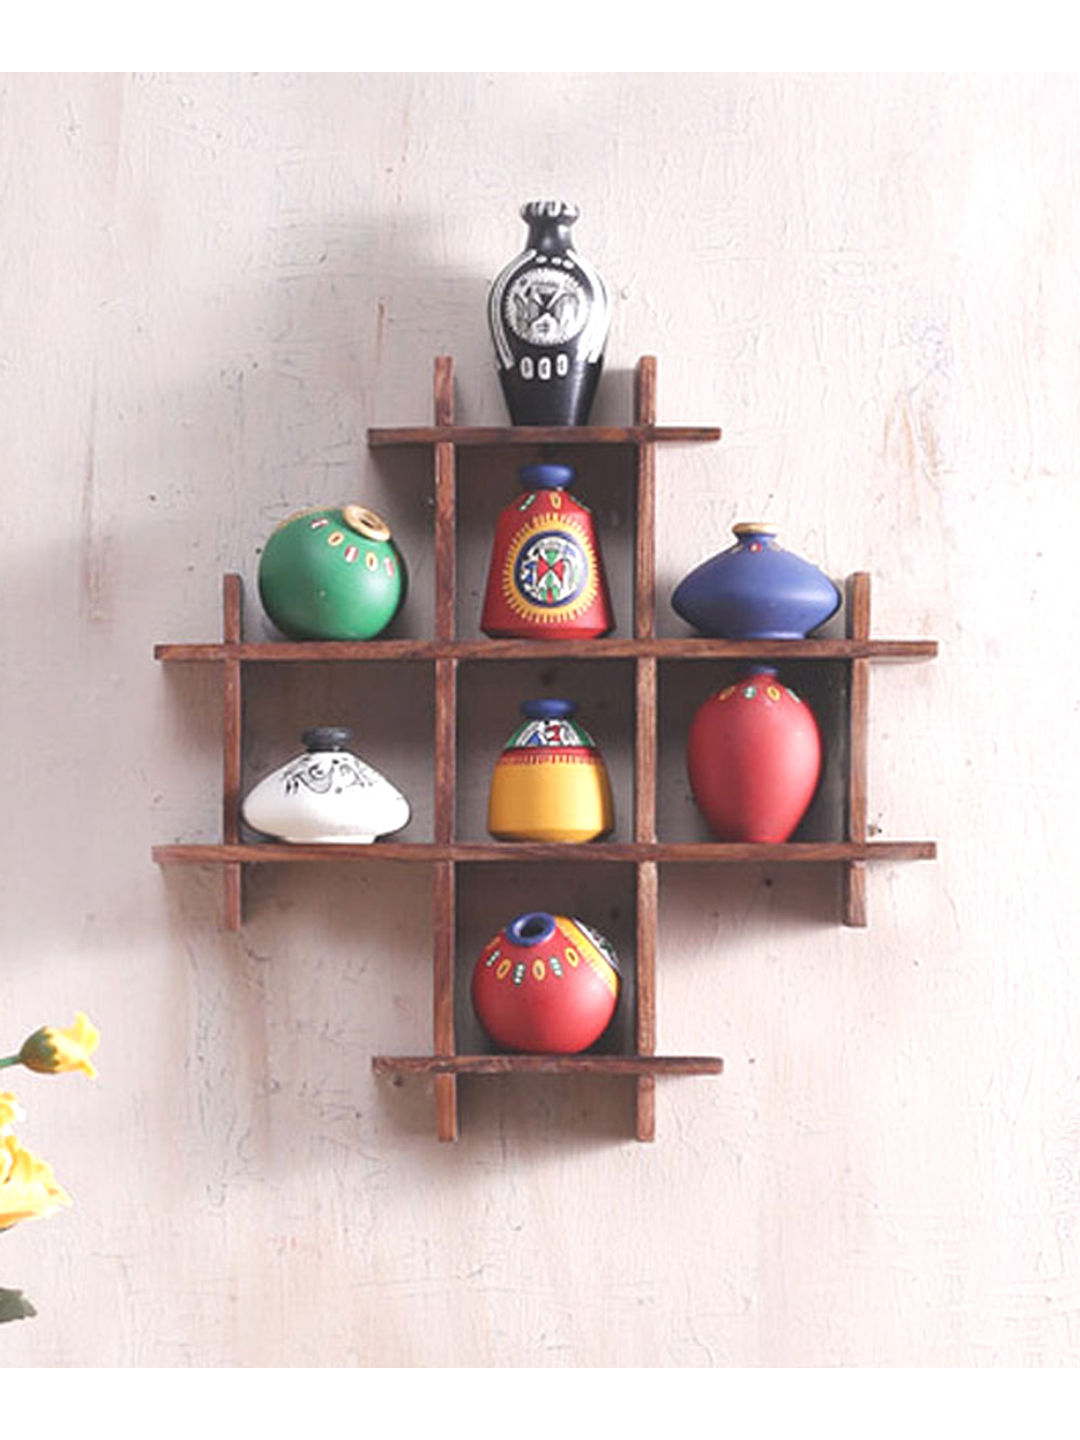 Handpainted Wall Ladder Decorative with Terracotta Pots